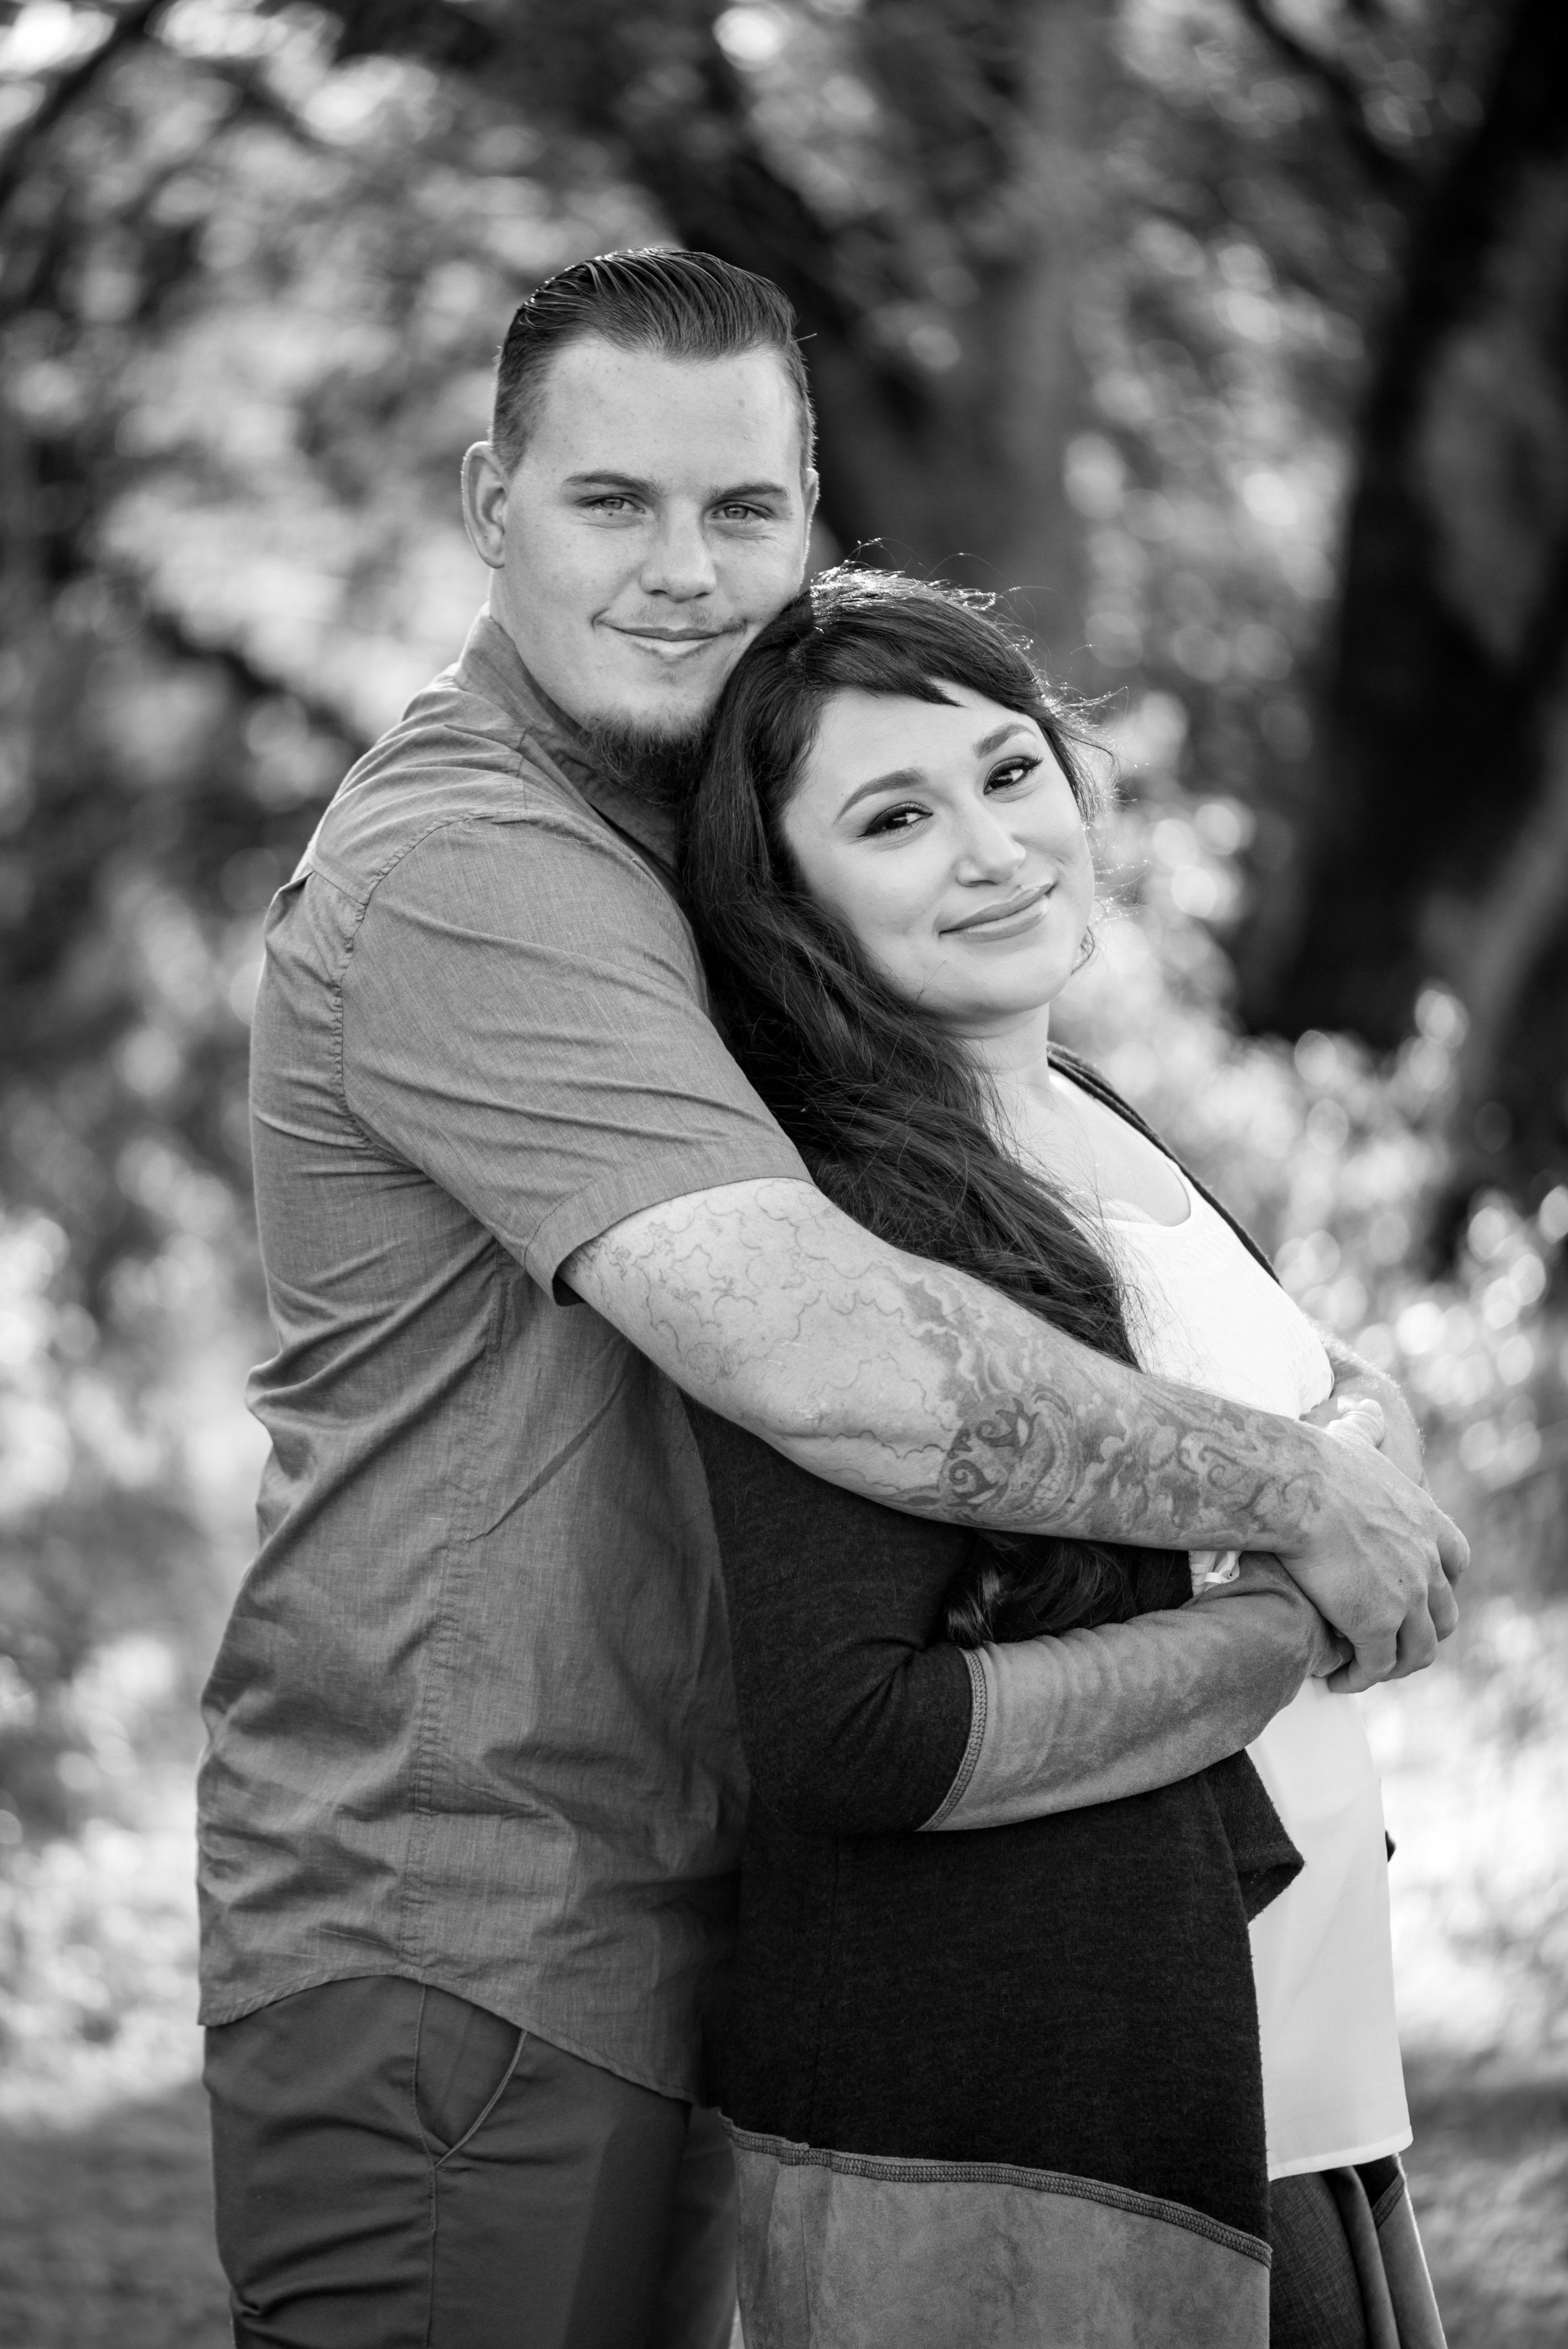 erica-garrett-002-sacramento-engagement-wedding-photographer-katherine-nicole-photography.JPG